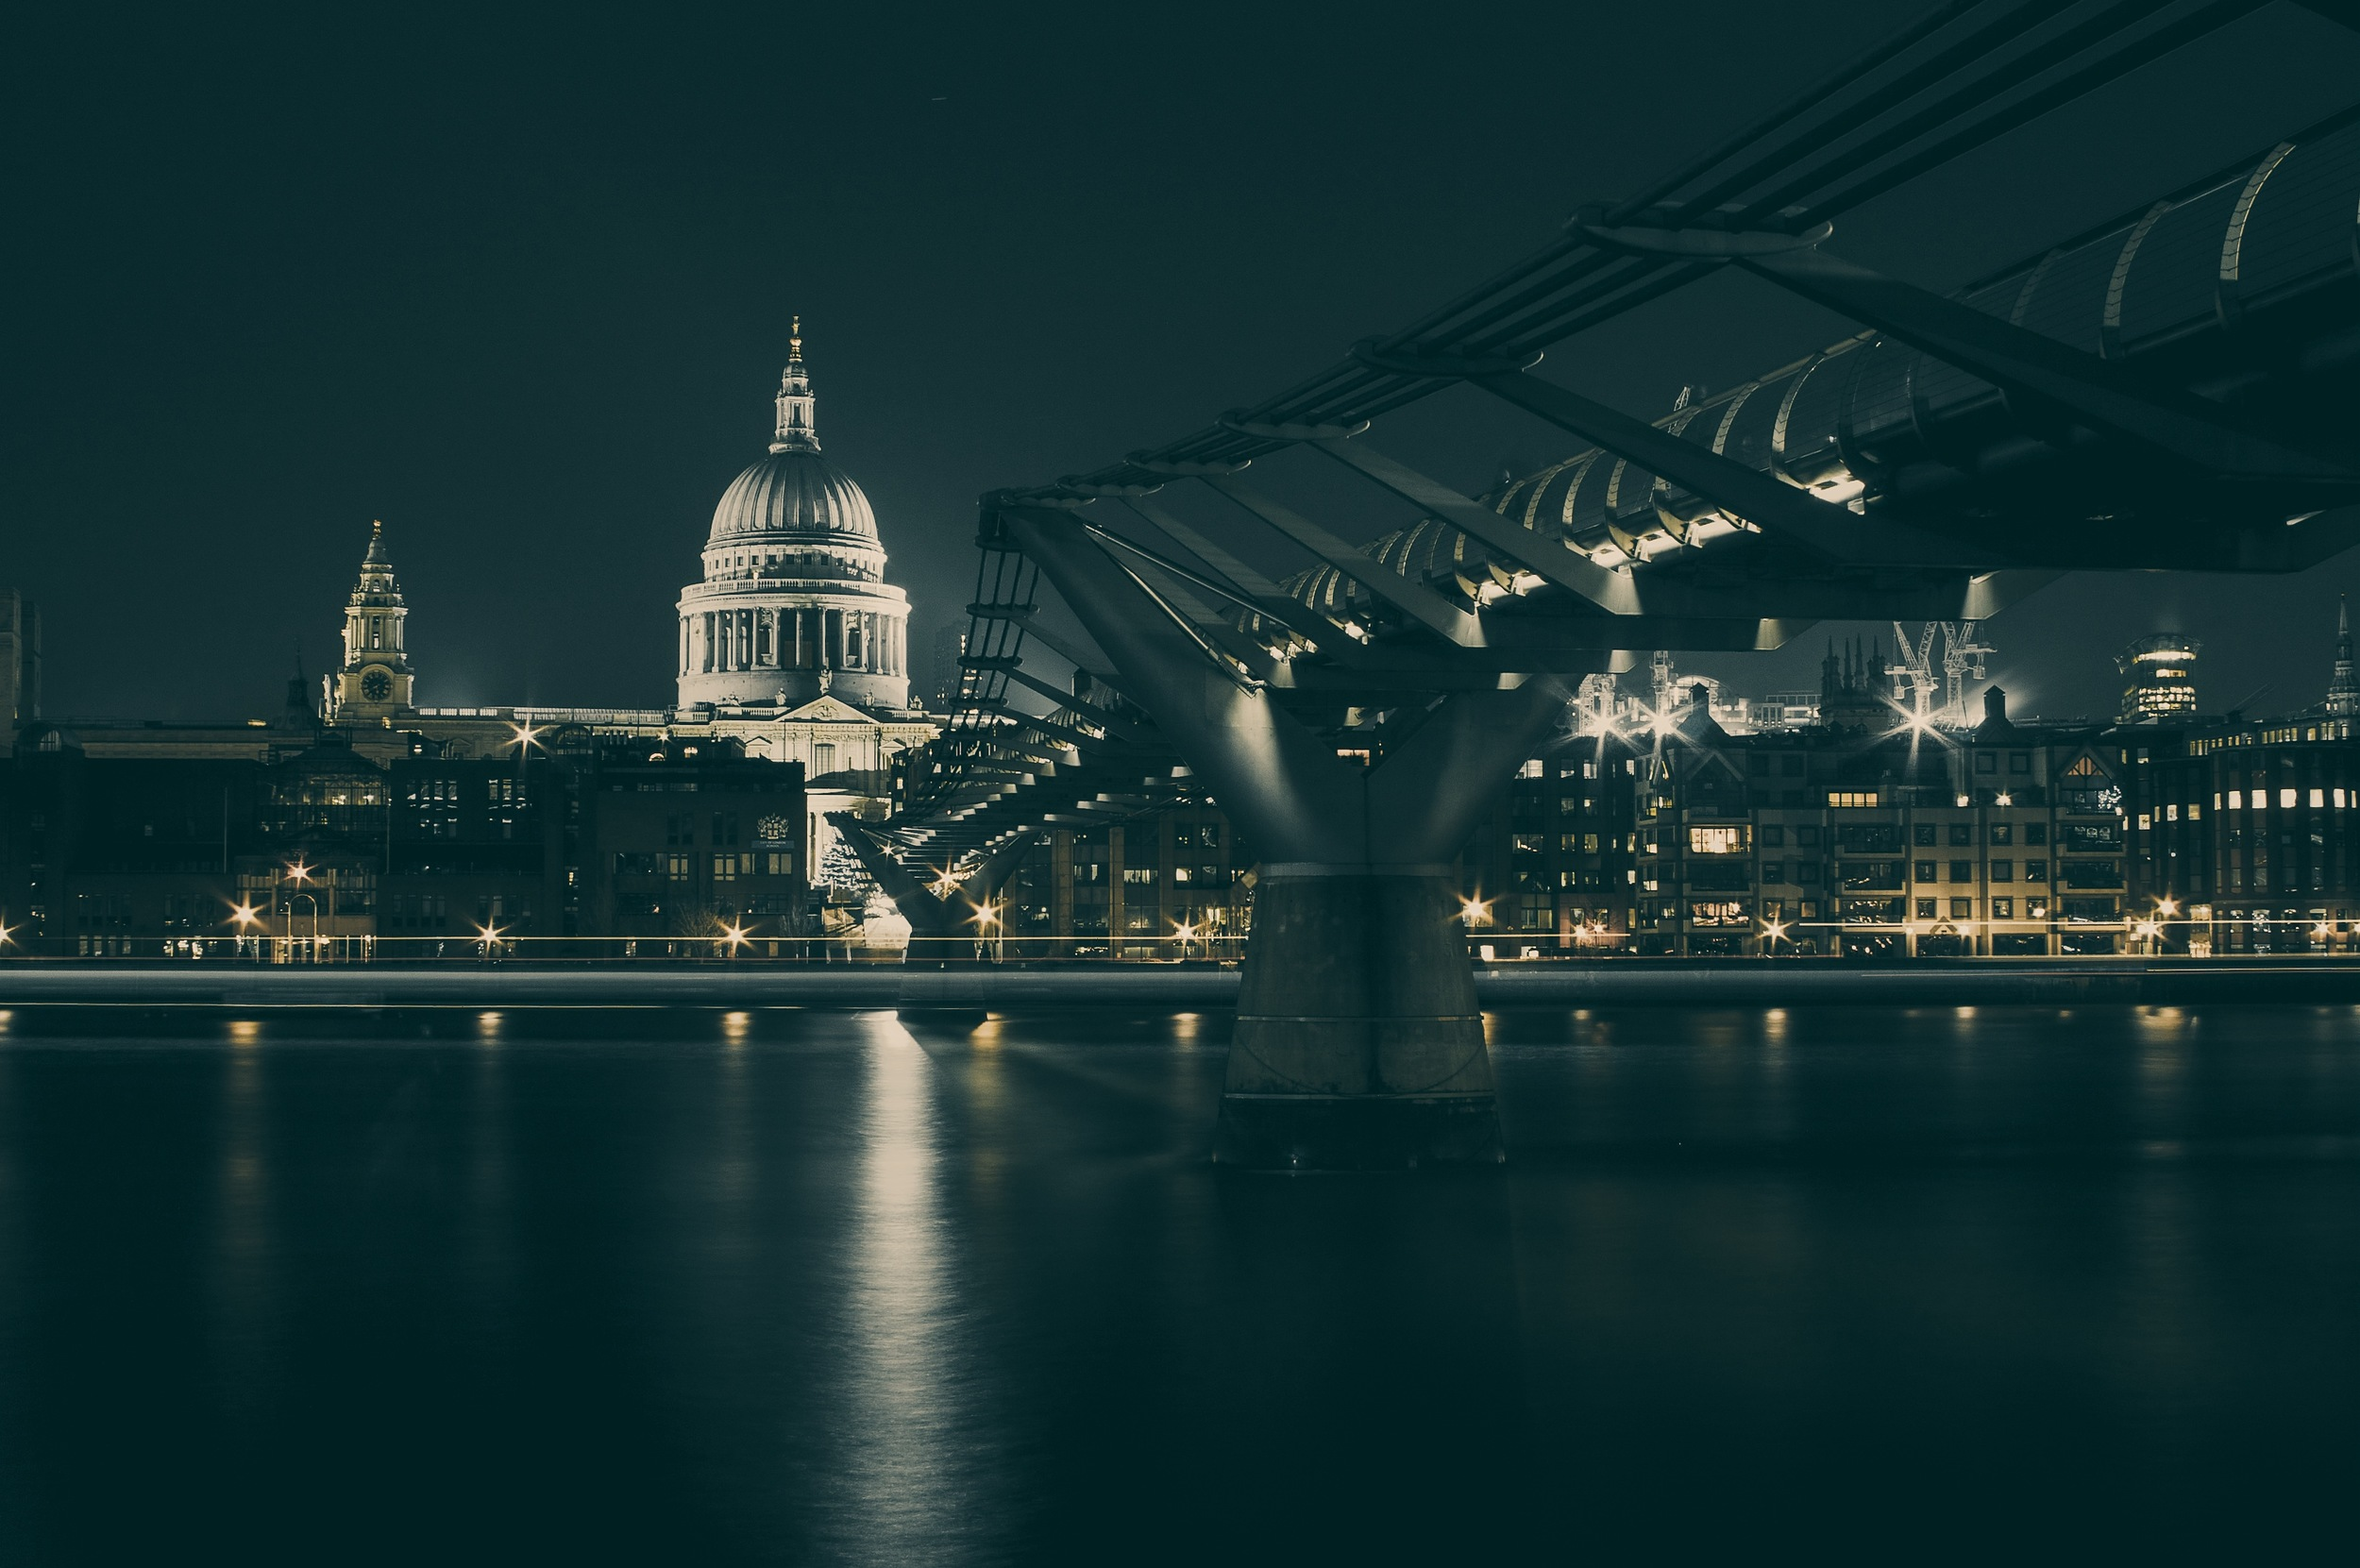 For the city page feature I was working on, this was the picture I used for the hero image for Washington D.C. Of course, this is not the Capitol building, but St. Paul's Cathedral...in London. This was quickly resolved.